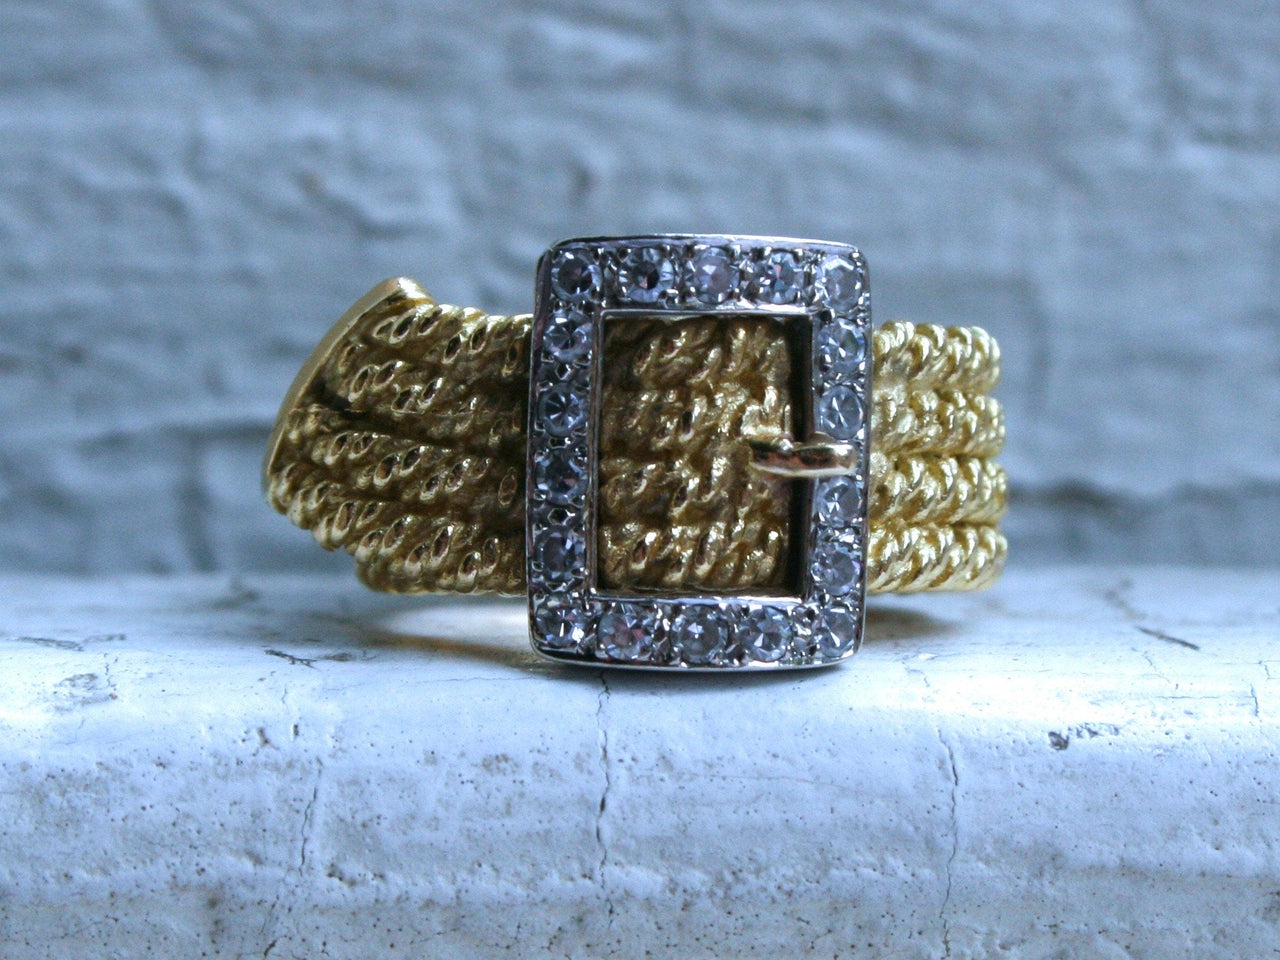 Vintage 18K White and Yellow Gold Diamond Buckle Rope Ring Band - 0.32ct.